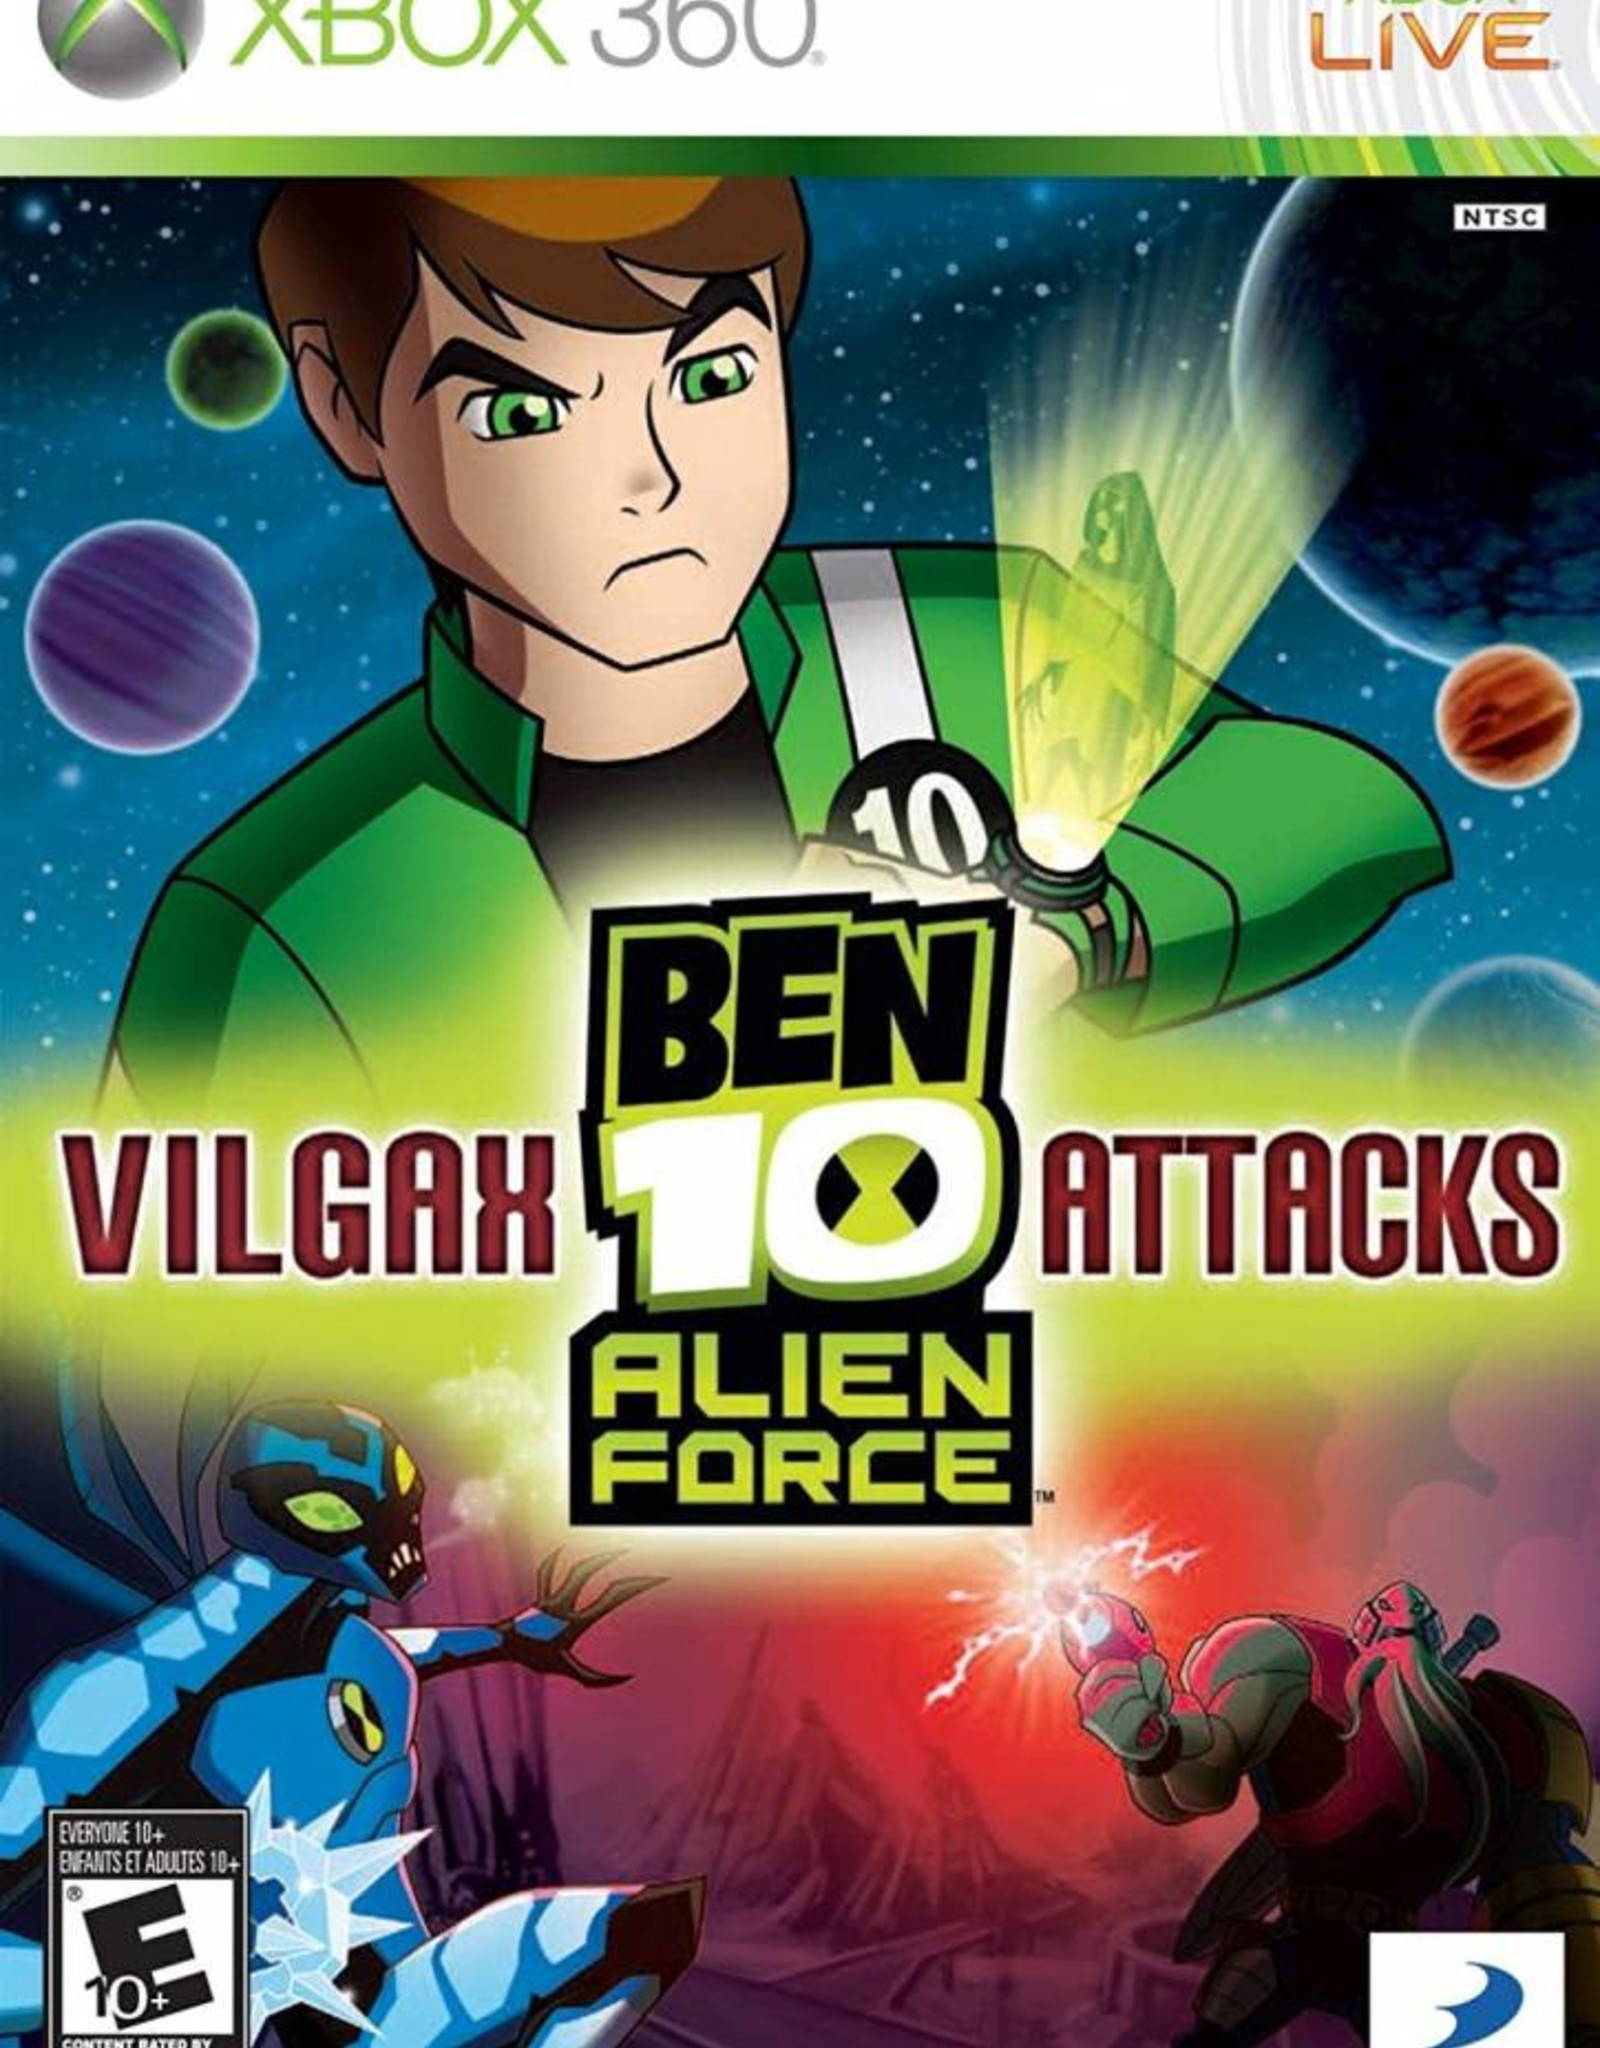 Ben 10: Vilgax Attacks - XB360 PrePlayed